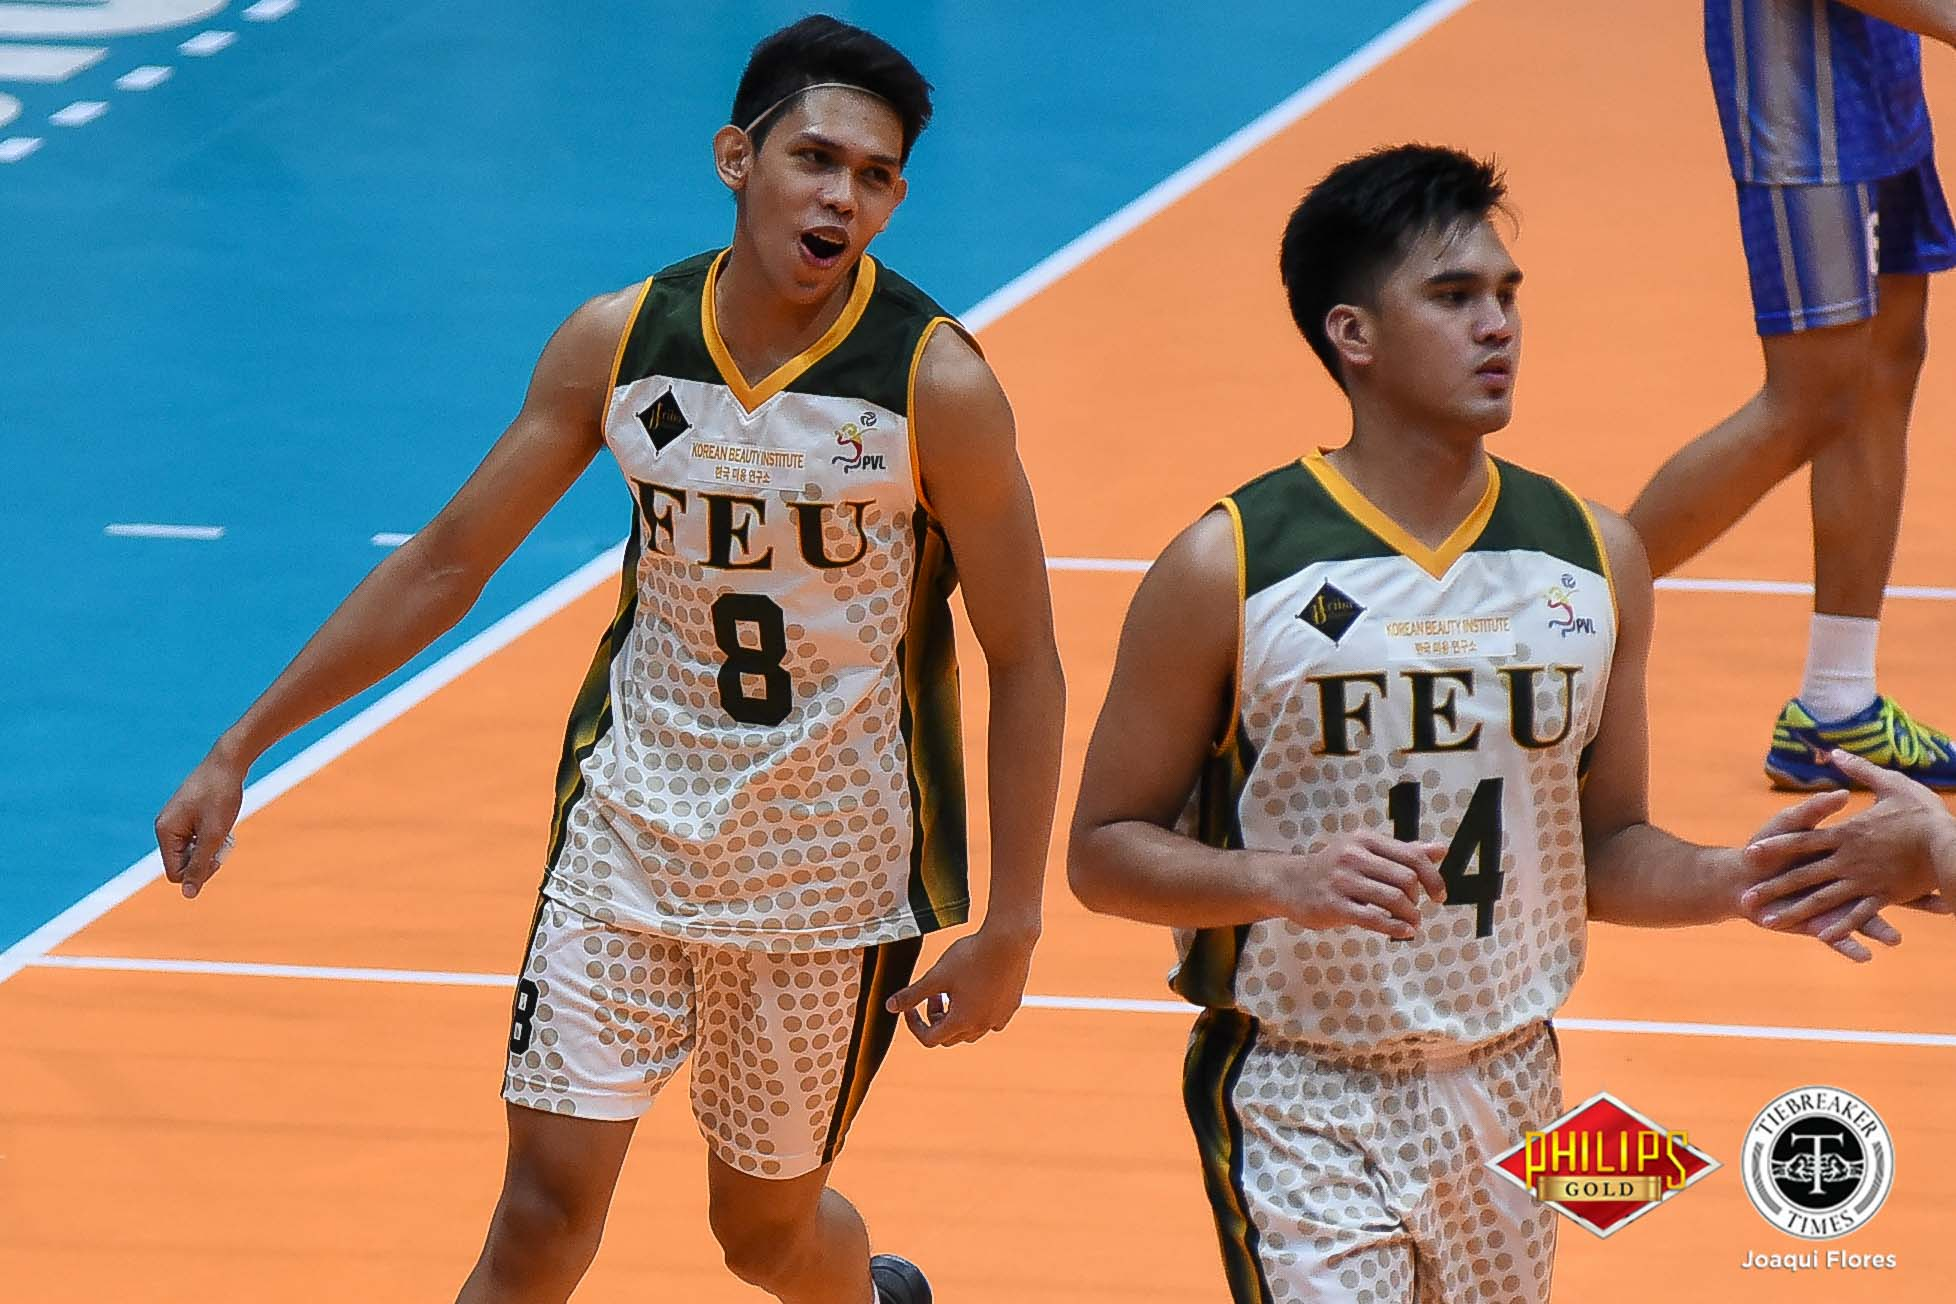 Tiebreaker Times Tamaraws reassert mastery of Fighting Maroons for playoff berth FEU News PVL UP Volleyball  UP Men's Volleyball RJ Paler Rey Diaz Owen Suarez Nicolo Consuelo Mac Millete JP Bugaoan Joshua Barrica Hans Chuacuco FEU Men's Volleyball 2018 PVL Season 2018 PVL Men's Collegiate Conference